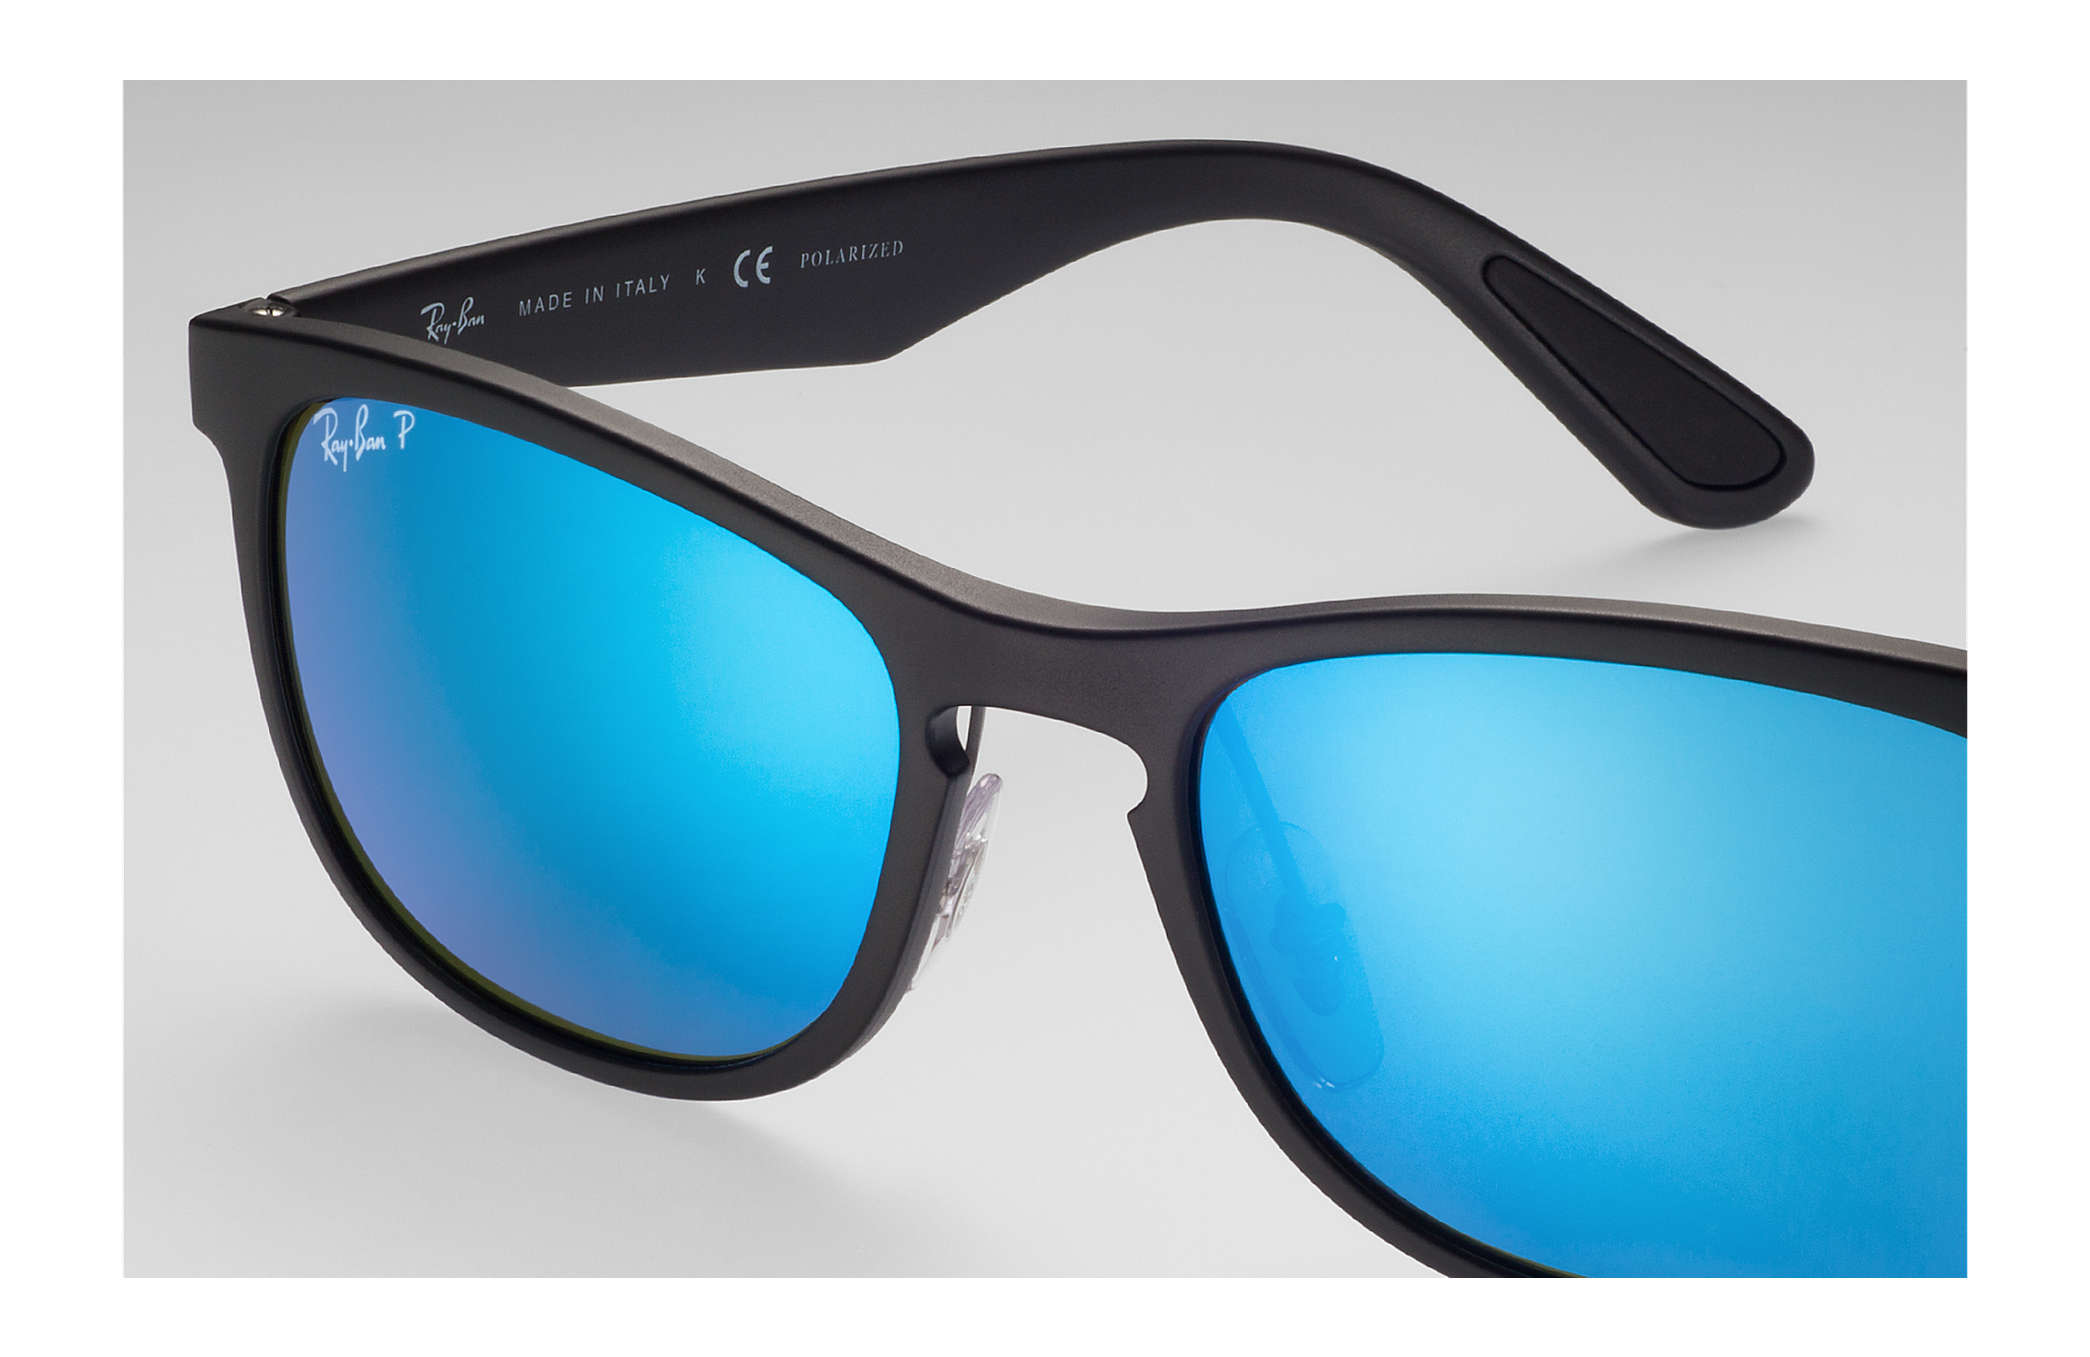 7b59834c0916 Ray-Ban Rb4263 Chromance RB4263 Black - Nylon - Blue Polarized ...